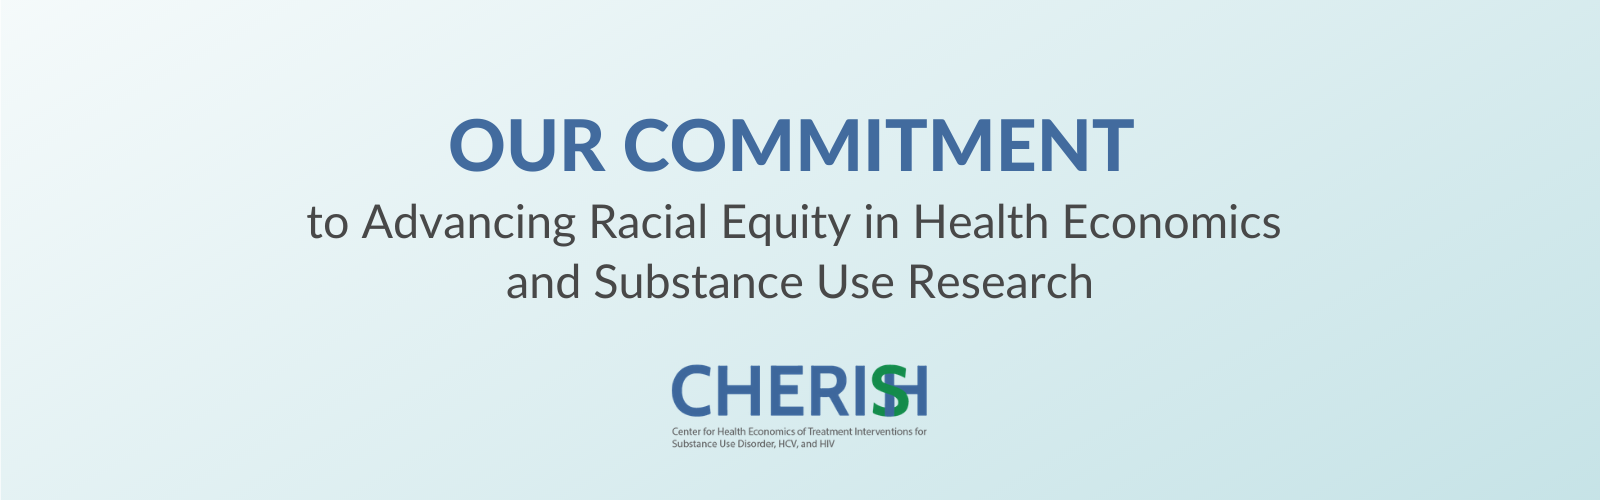 "Text on image says, ""Our Commitment to Advancing Racial Equity in Health Economics and Substances Use Research"""